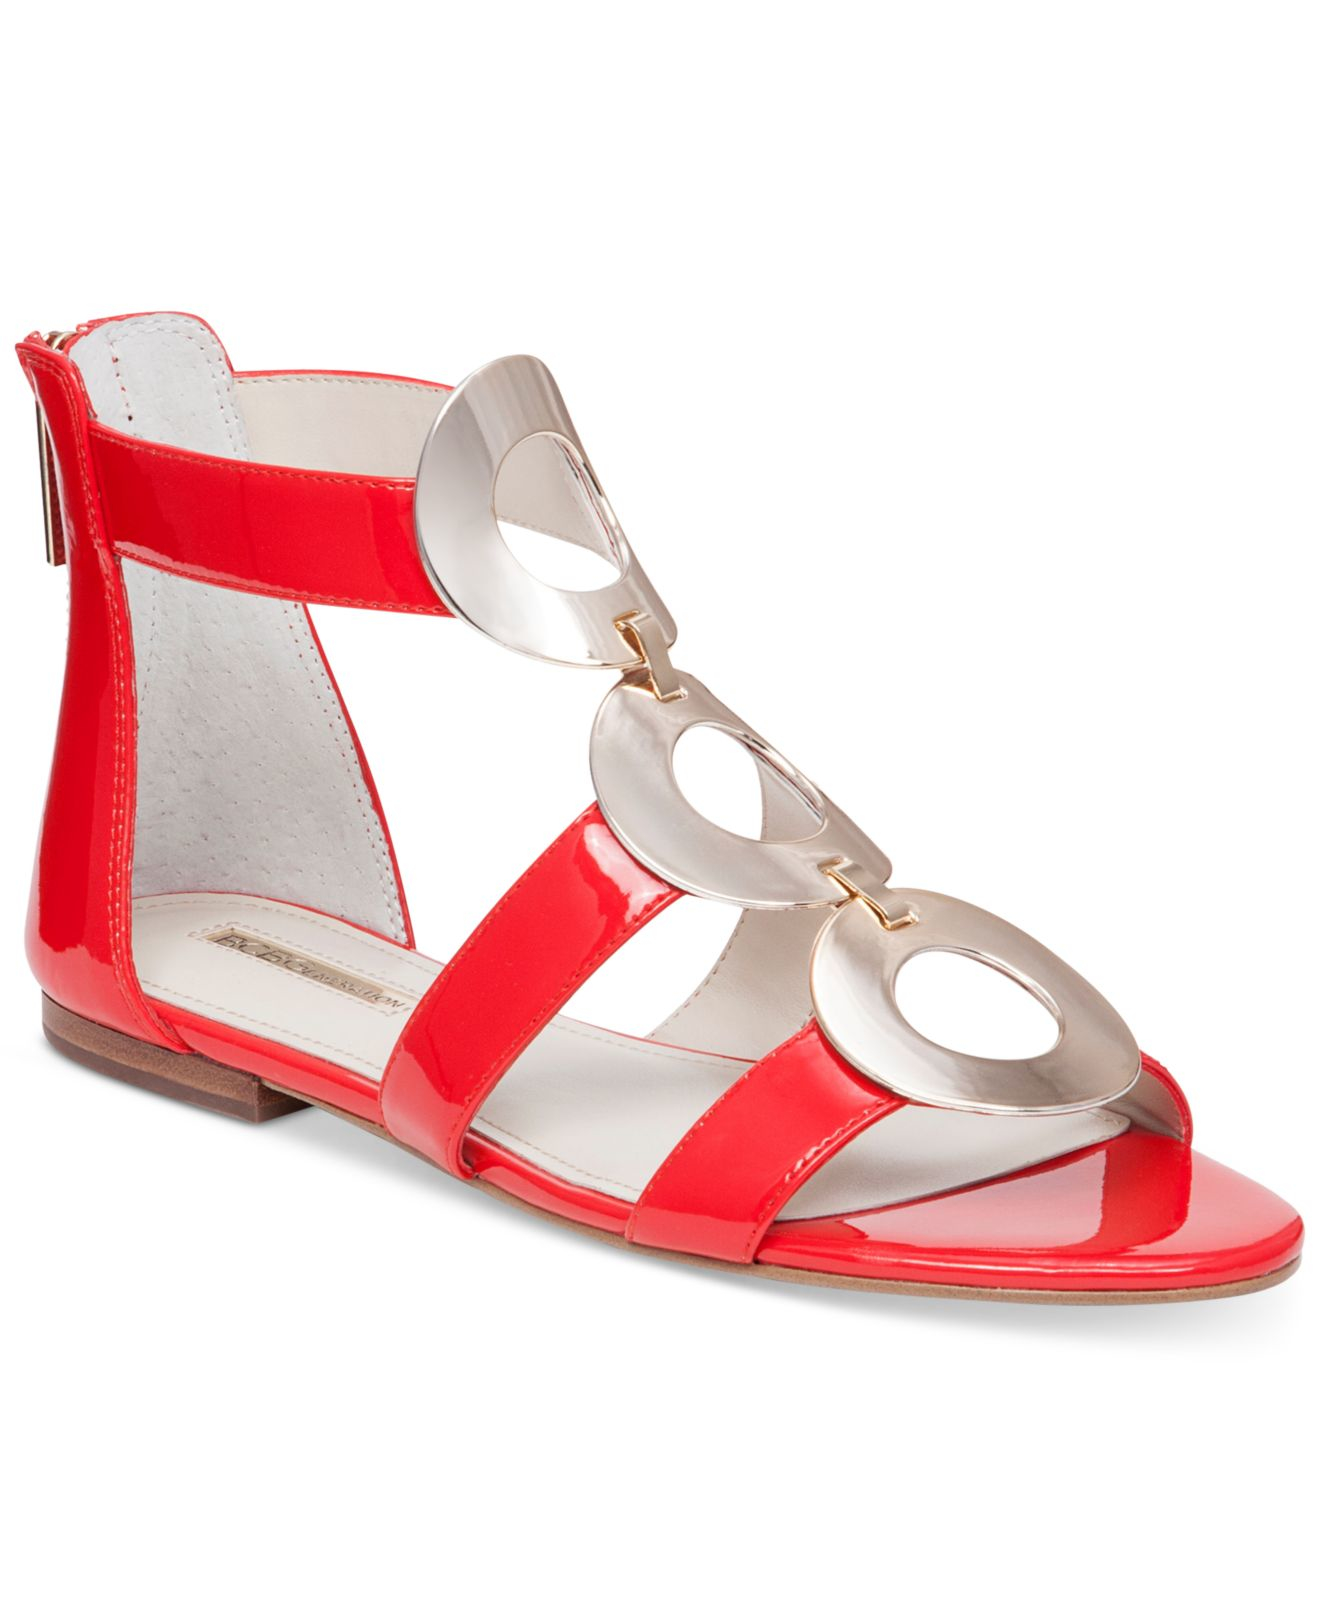 19a2ad38a04 Lyst - BCBGeneration Faroh Embellished Flat Sandals in Red